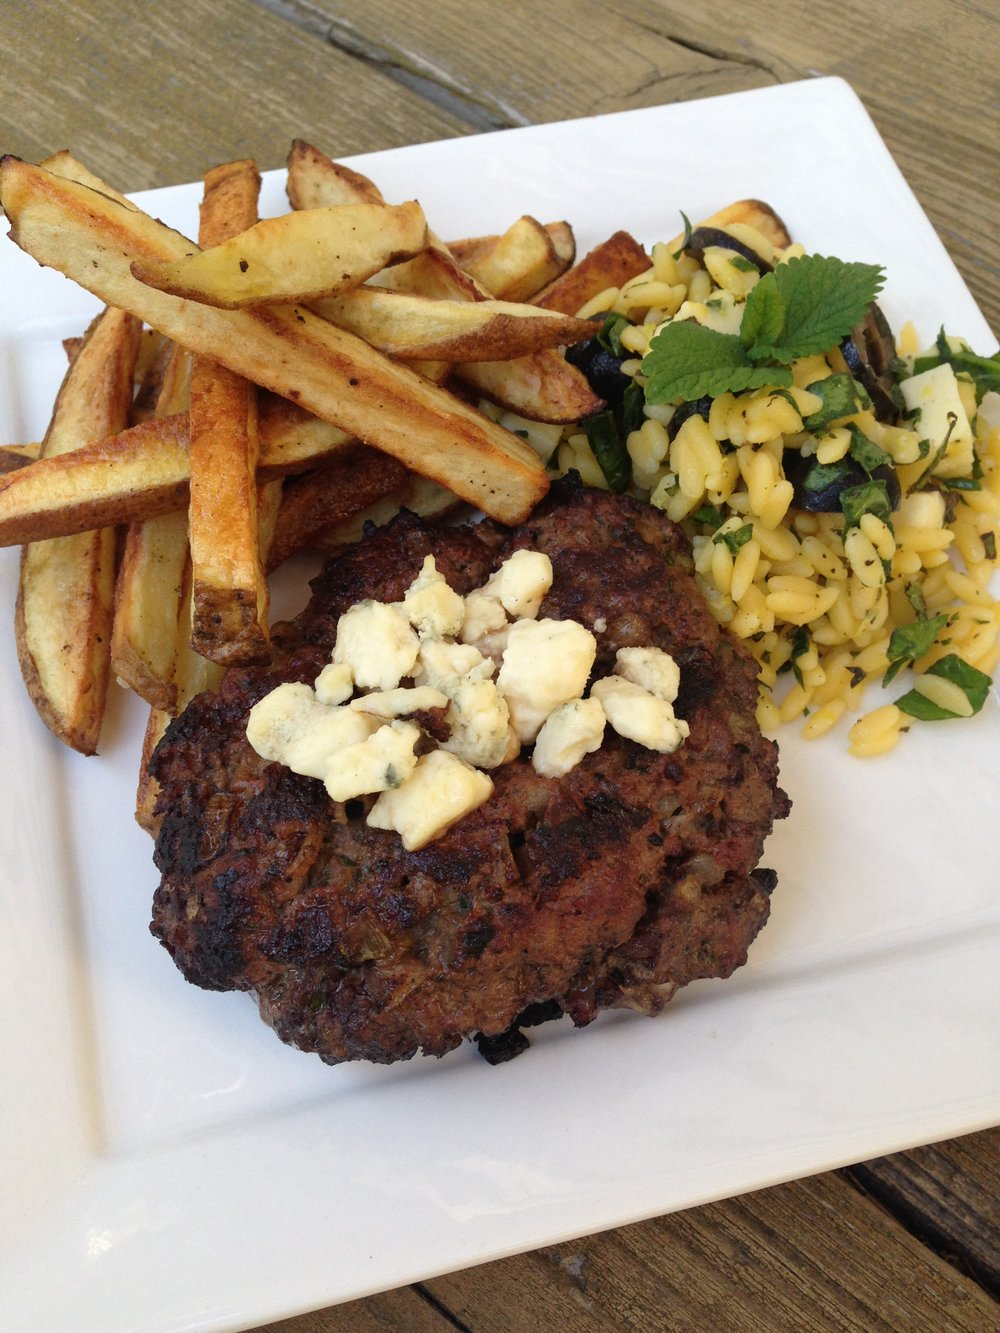 Red Wine Marinated Burgers with Oven Fries and Gluten Free Orzo Salad